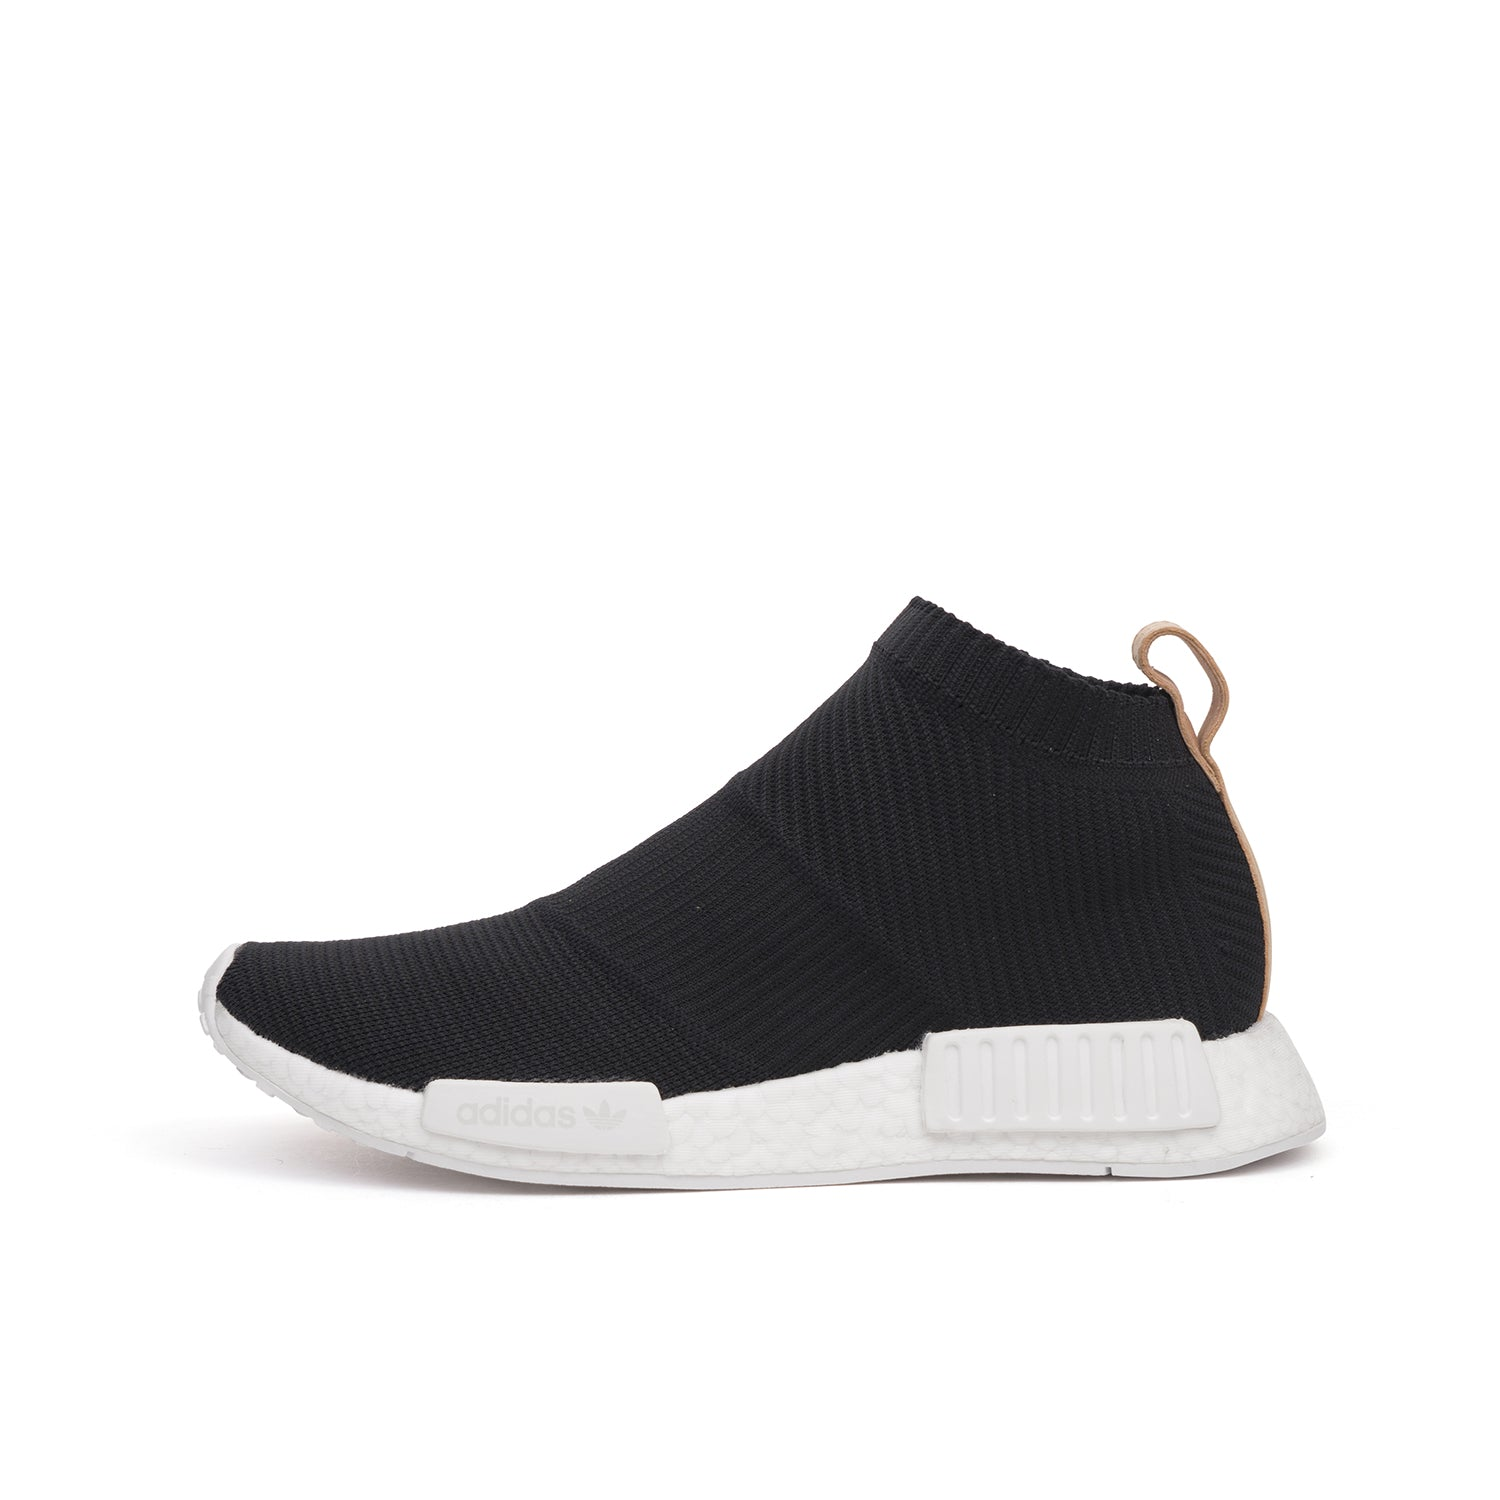 adidas Originals NMD_CS1 PK 'Leather' Core Black